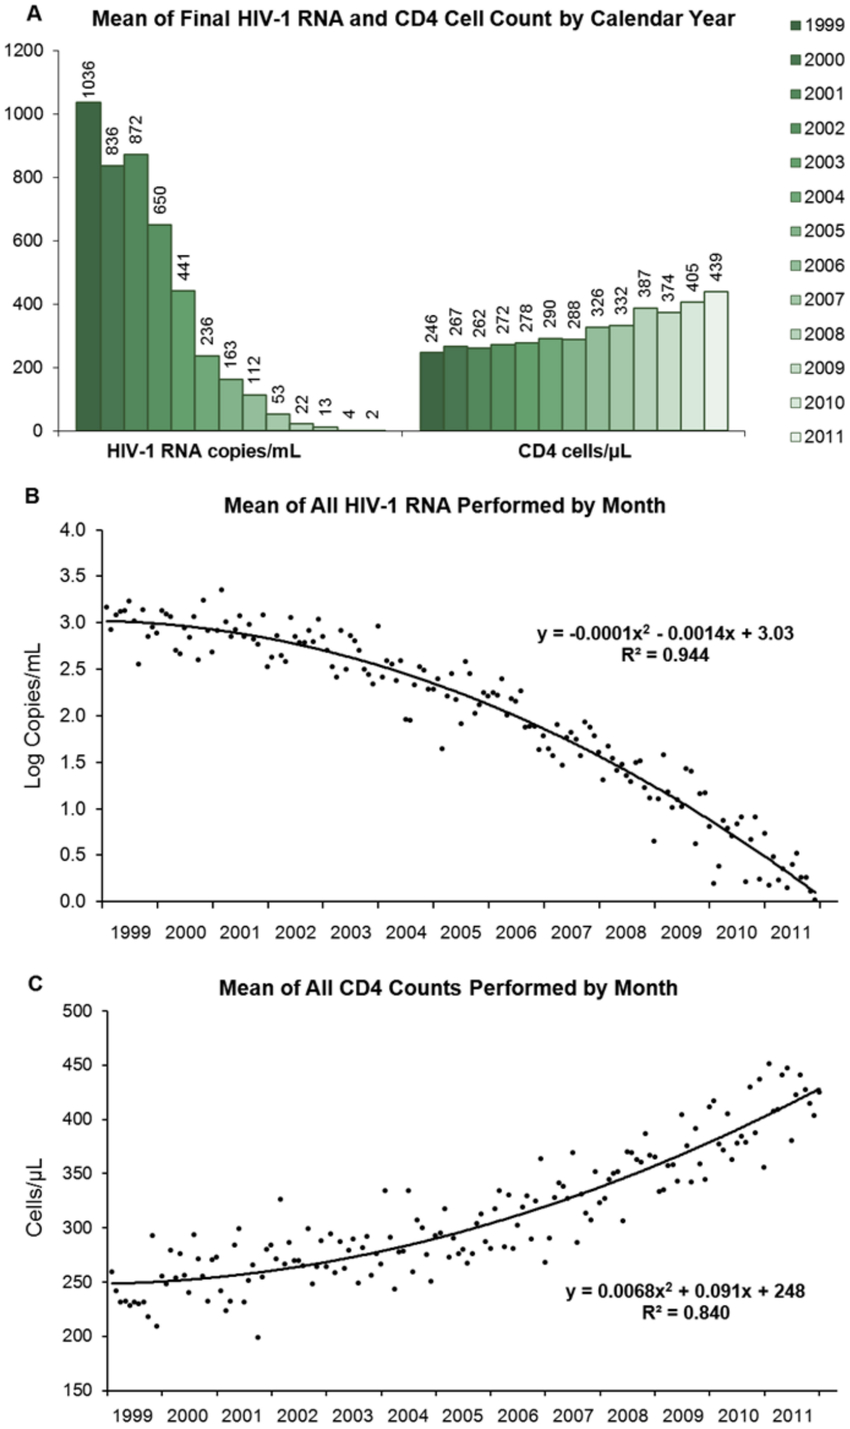 Annual And Monthly Means Of Hiv1 Rna And Cd4 Cell Counts in B Gale Wilson Calendar